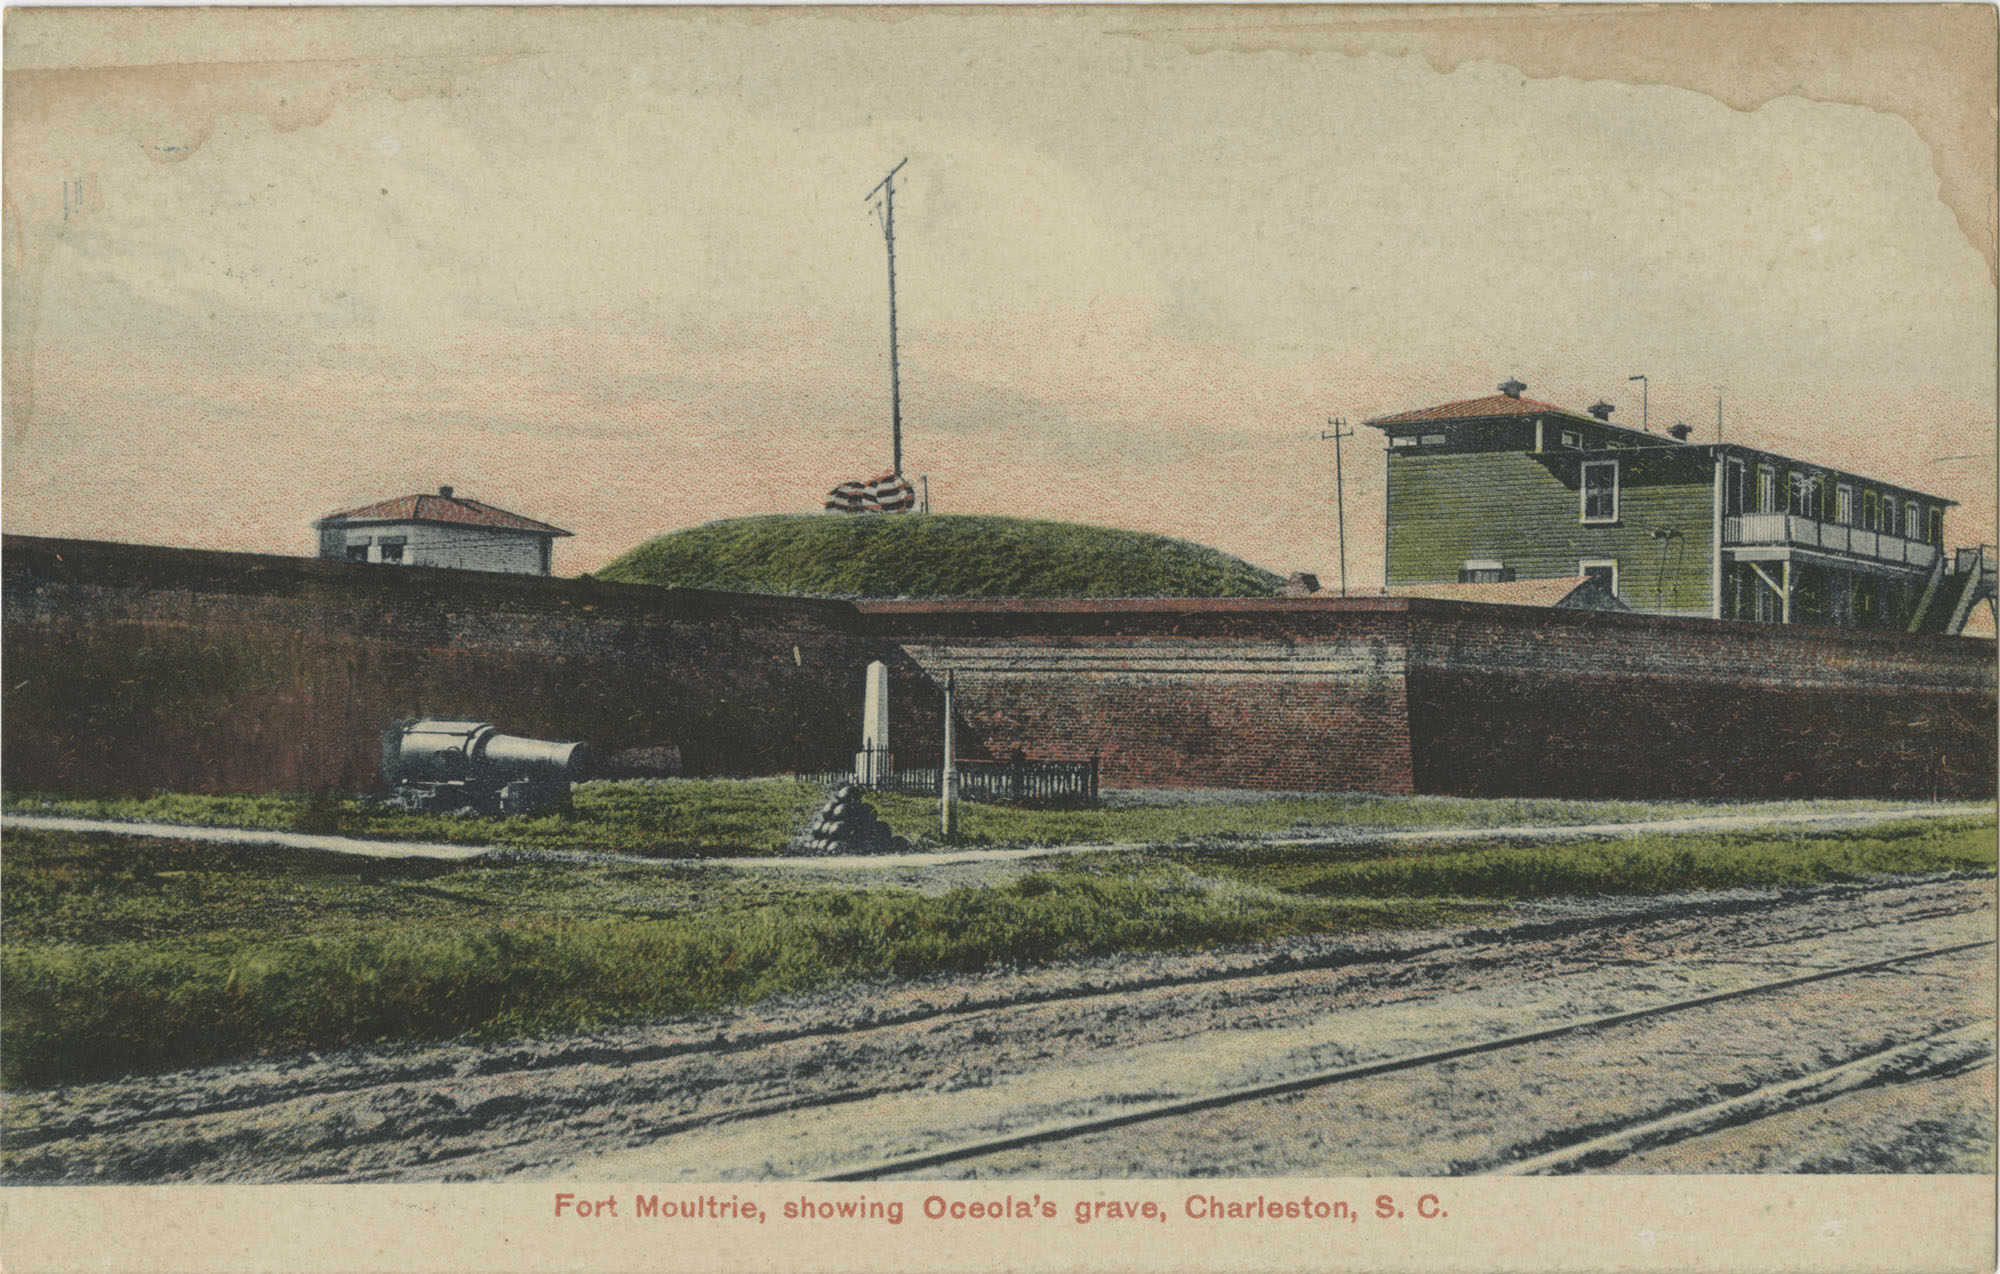 Fort Moultrie, showing Oceola's grave, Charleston, S.C.